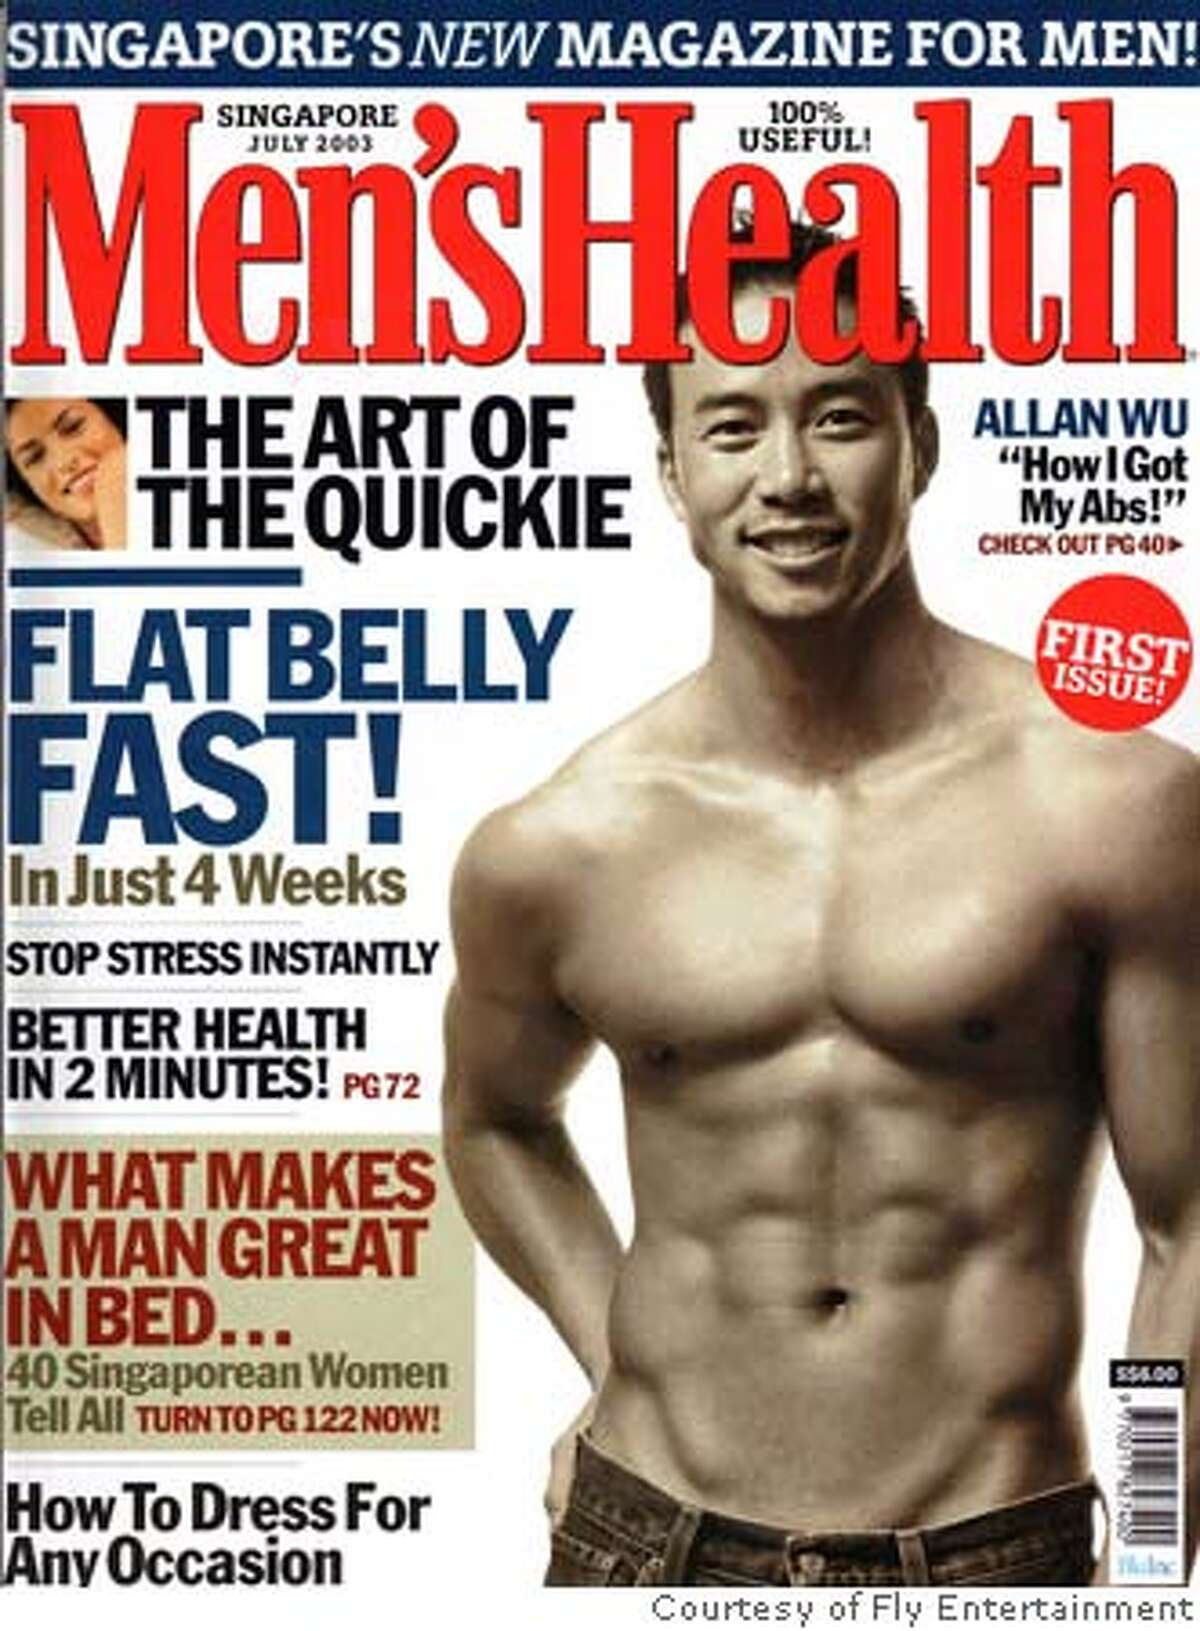 Photo of Allan Wu, a Chinese American star in Singapore. Credit: Courtesy of Fly Entertainment